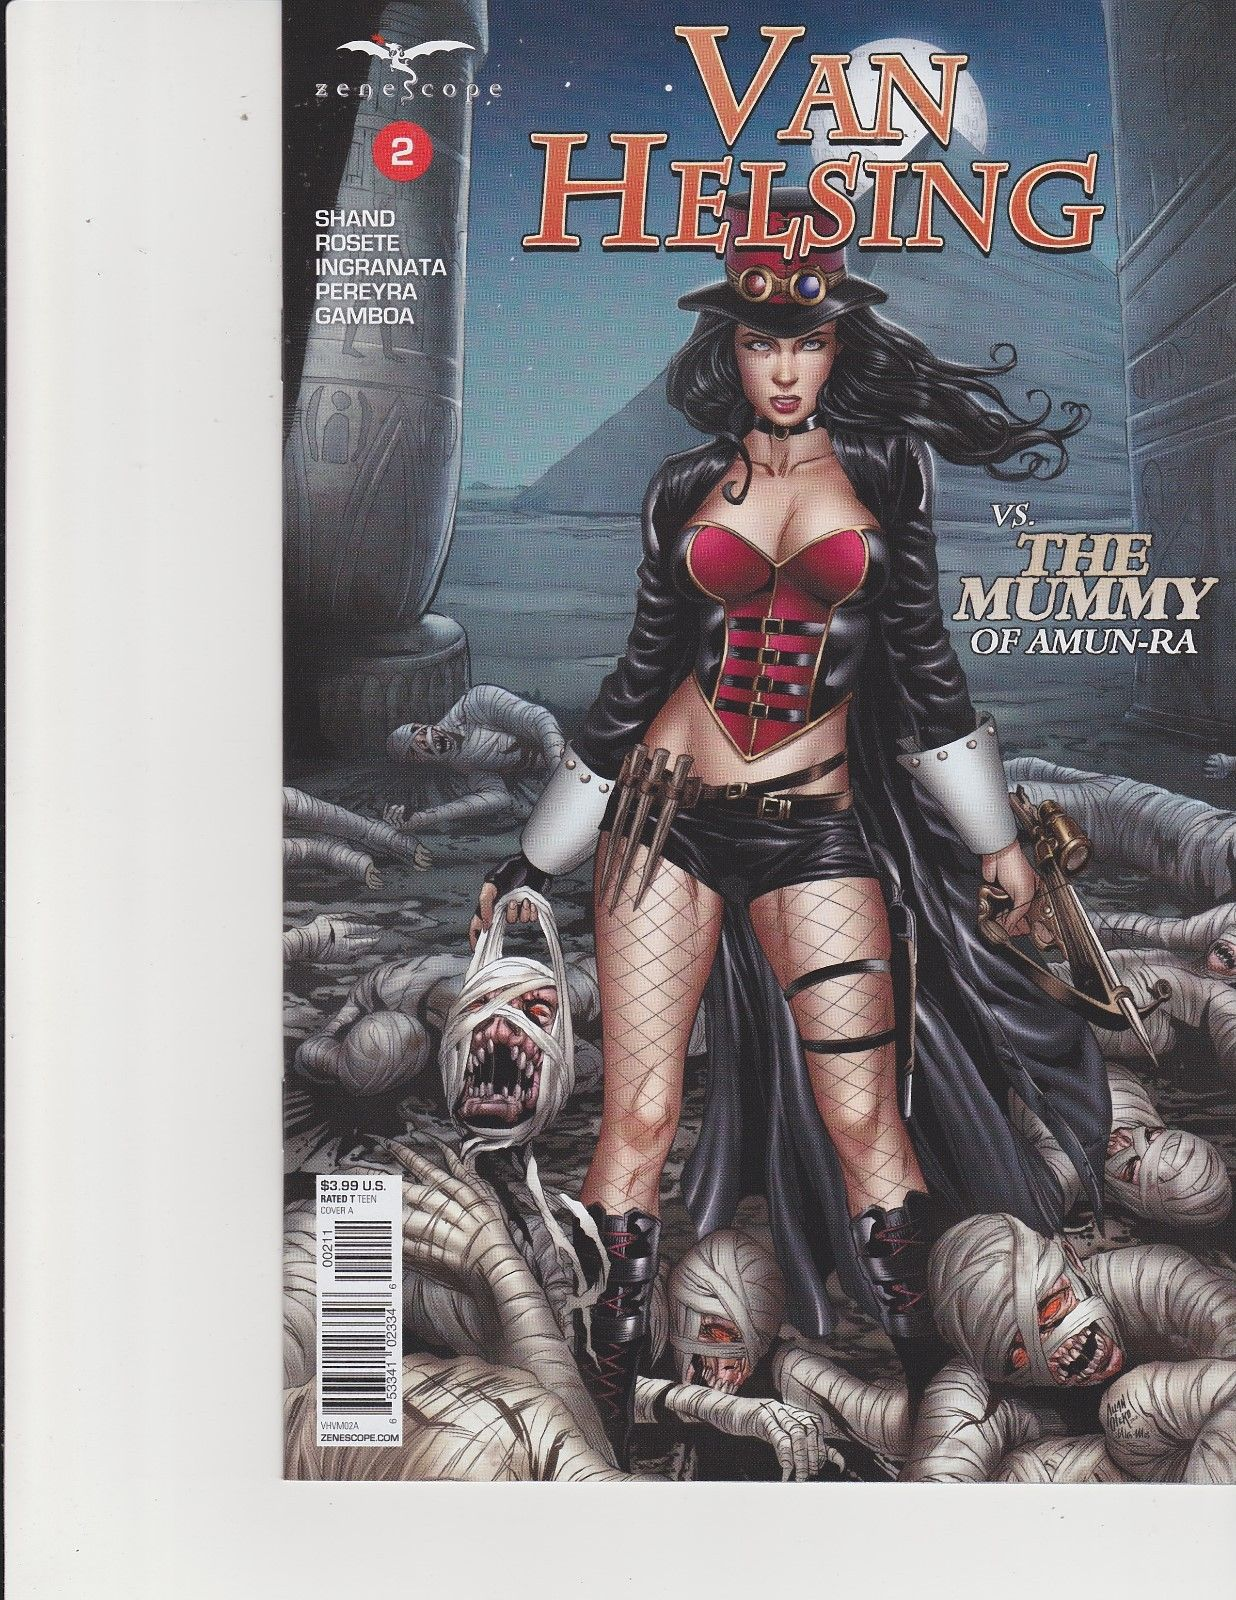 Van Helsing vs The Mummy #2 Cover A Zenescope Comic GFT NM Otero